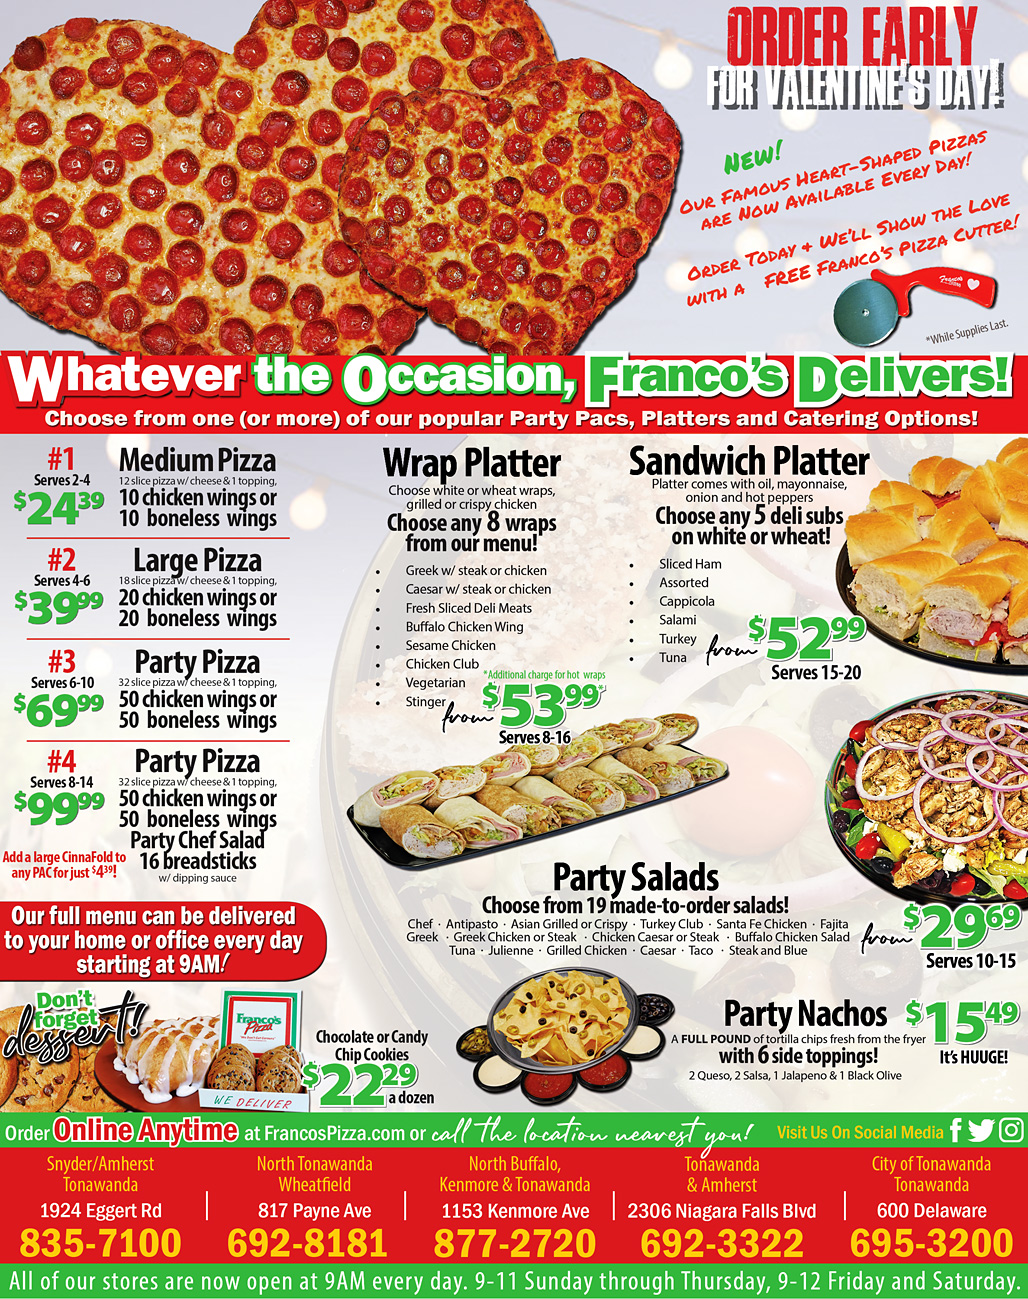 Franco's Pizza Catering Menu - Pizza, wings, wraps, subs, salads & more!